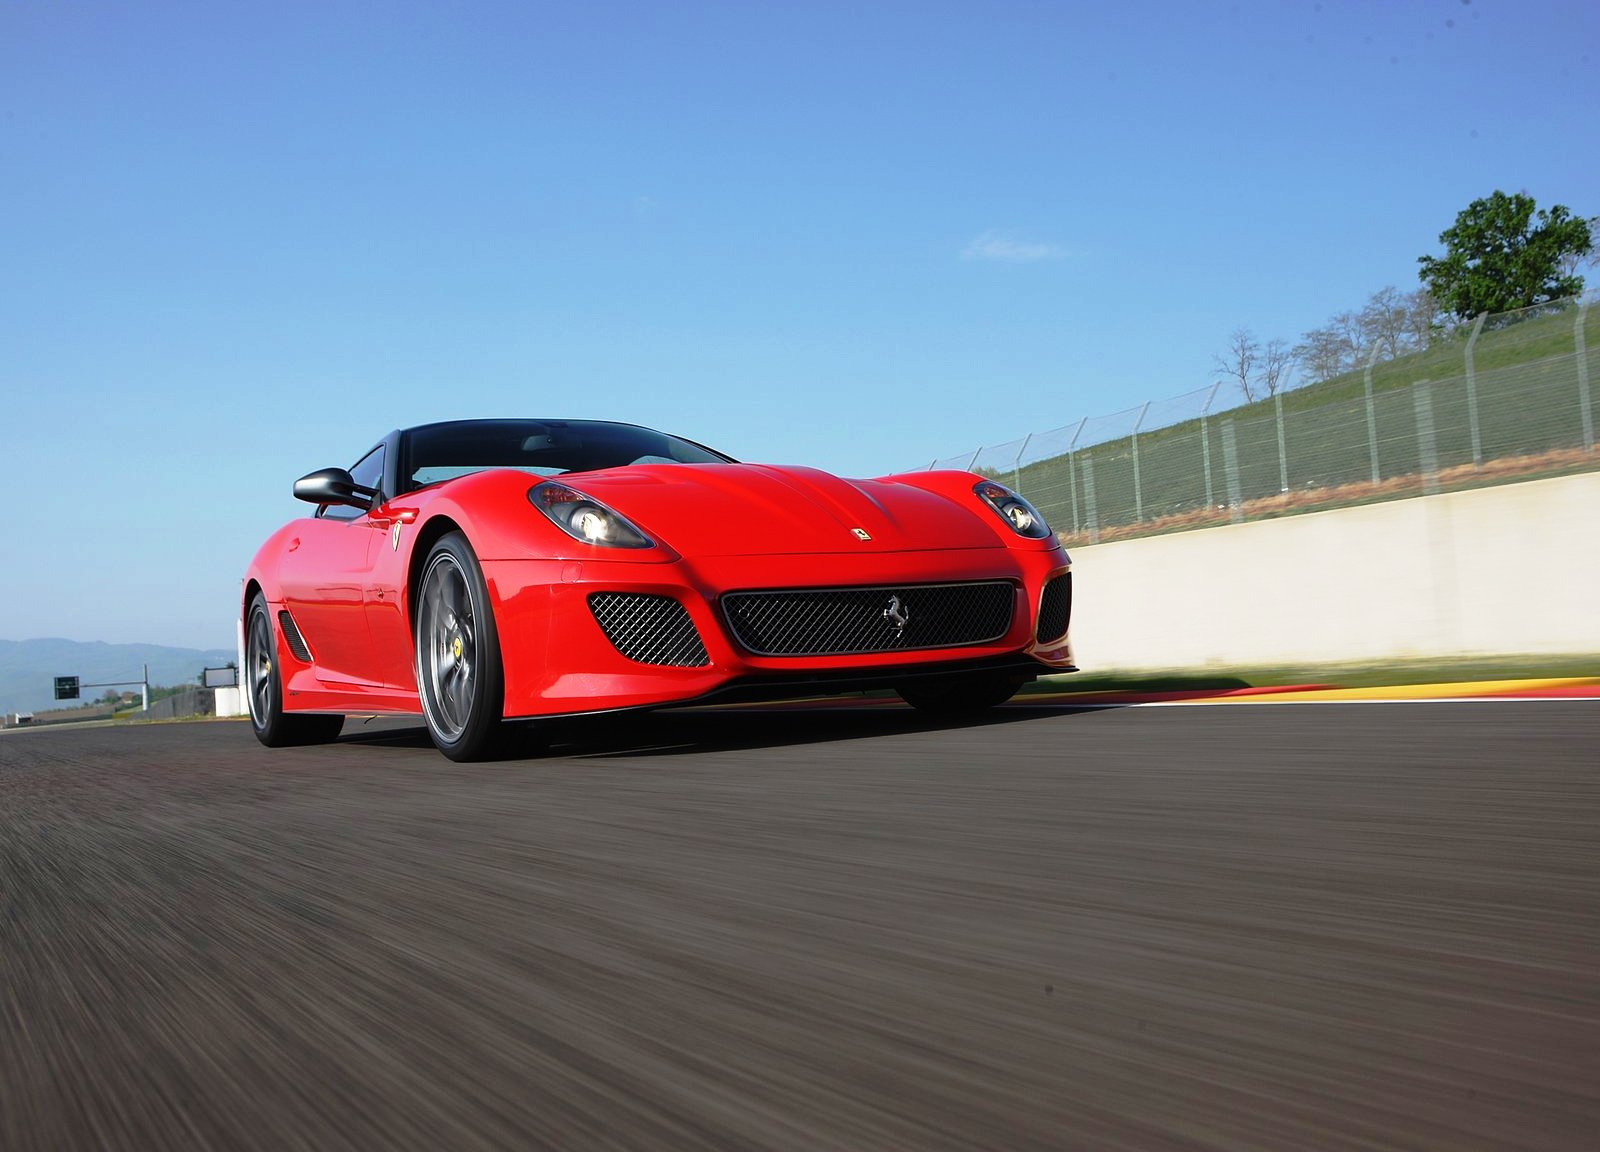 Ferrari-599-GTO-Bottom-Pose.jpg